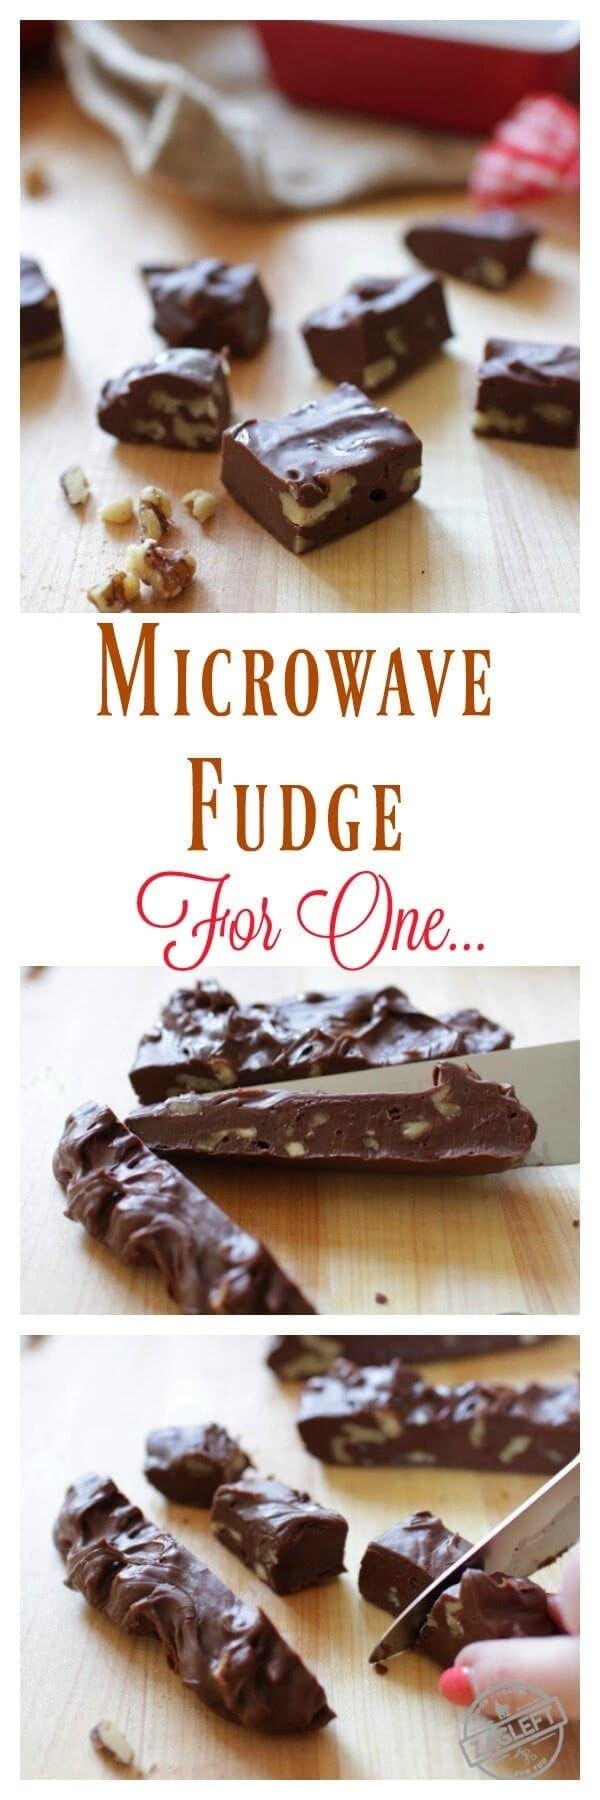 Homemade Microwave Fudge For One – a single serving recipe for rich, smooth, incredible chocolate fudge. One bowl and a microwave is all you need to make this scaled down version of my favorite fudge recipe! | onedishkitchen.com